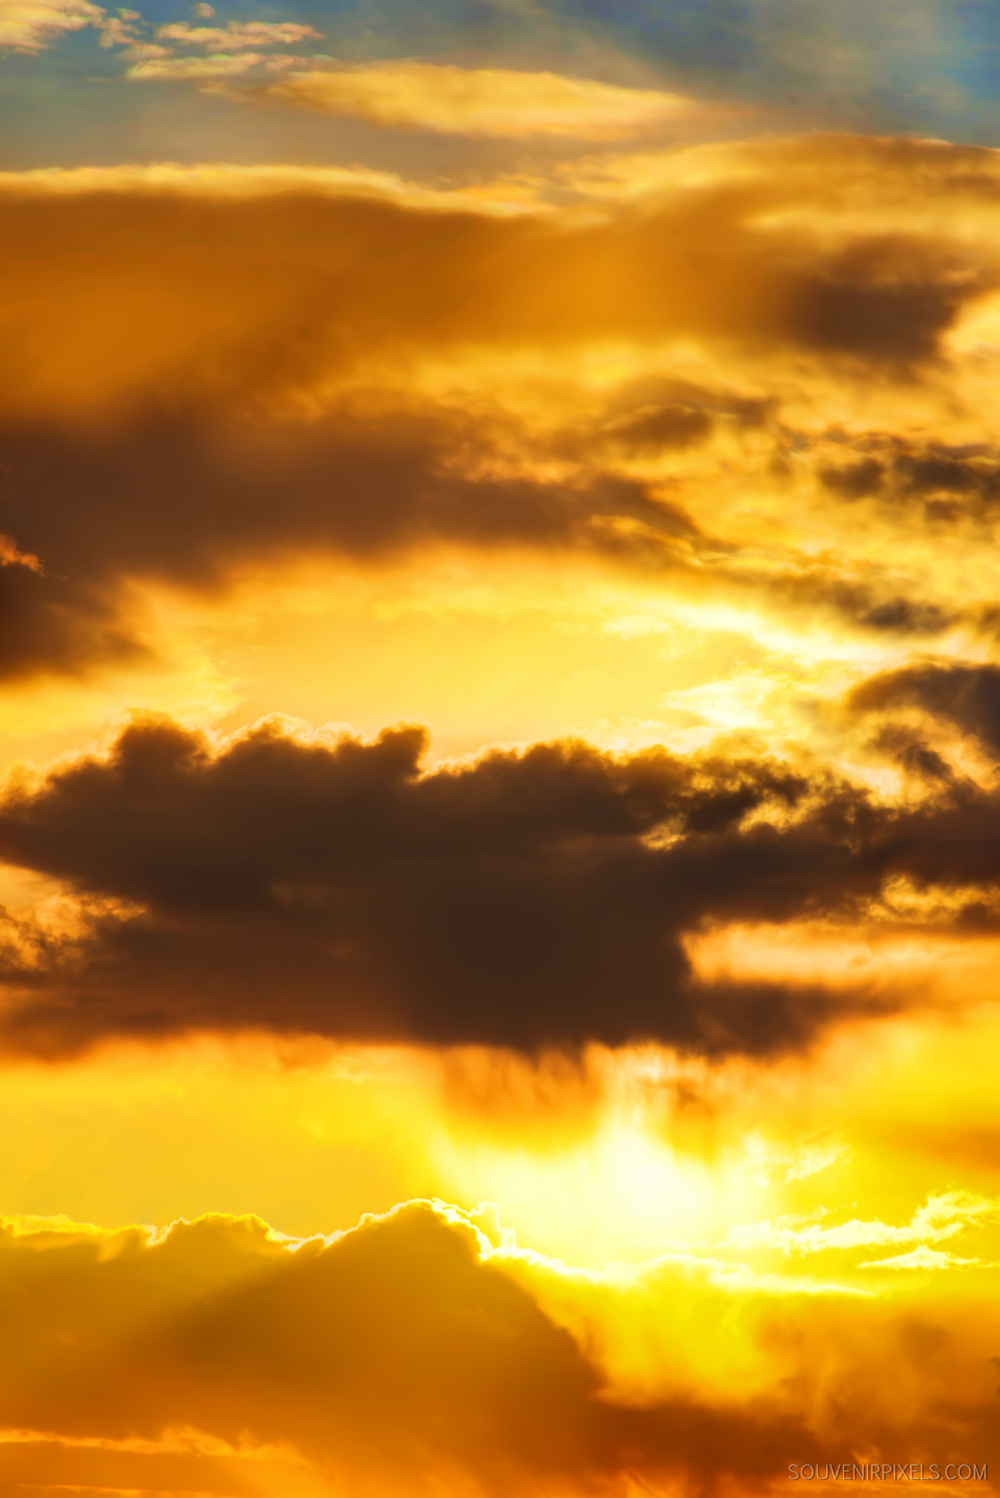 P0464-Golden Cloudscape-XLarge.jpg